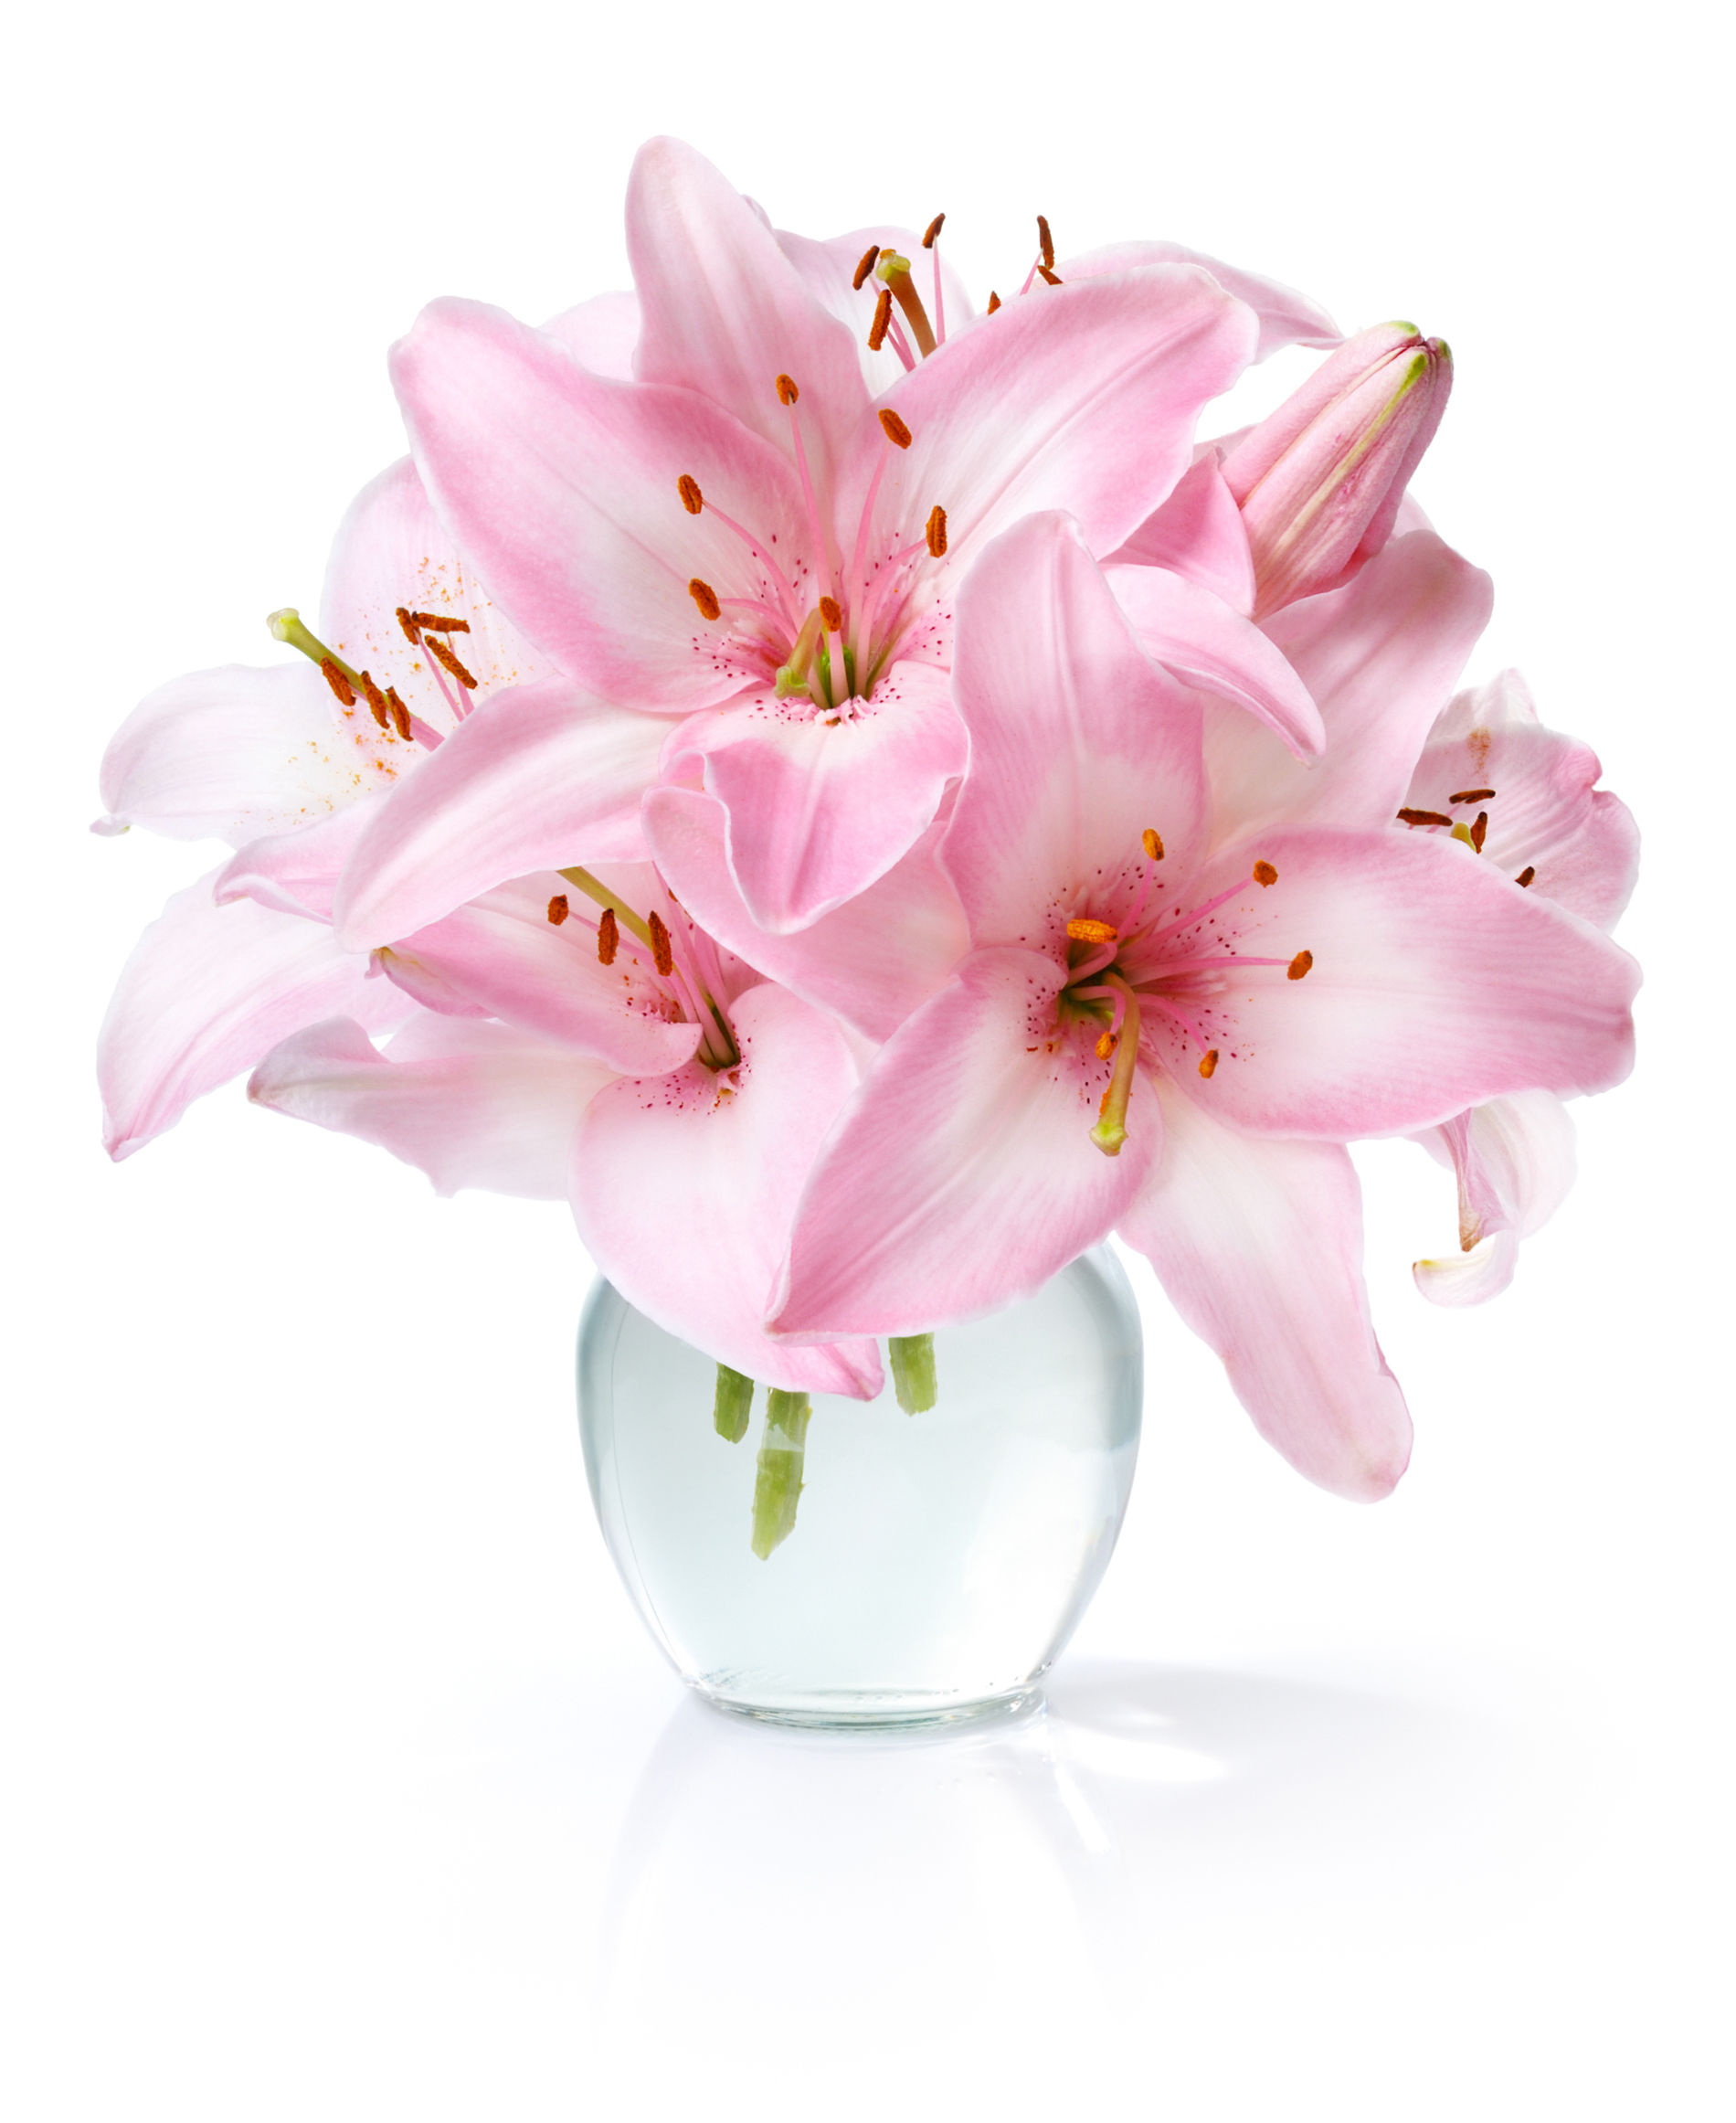 In a vase of pink lilies 52838